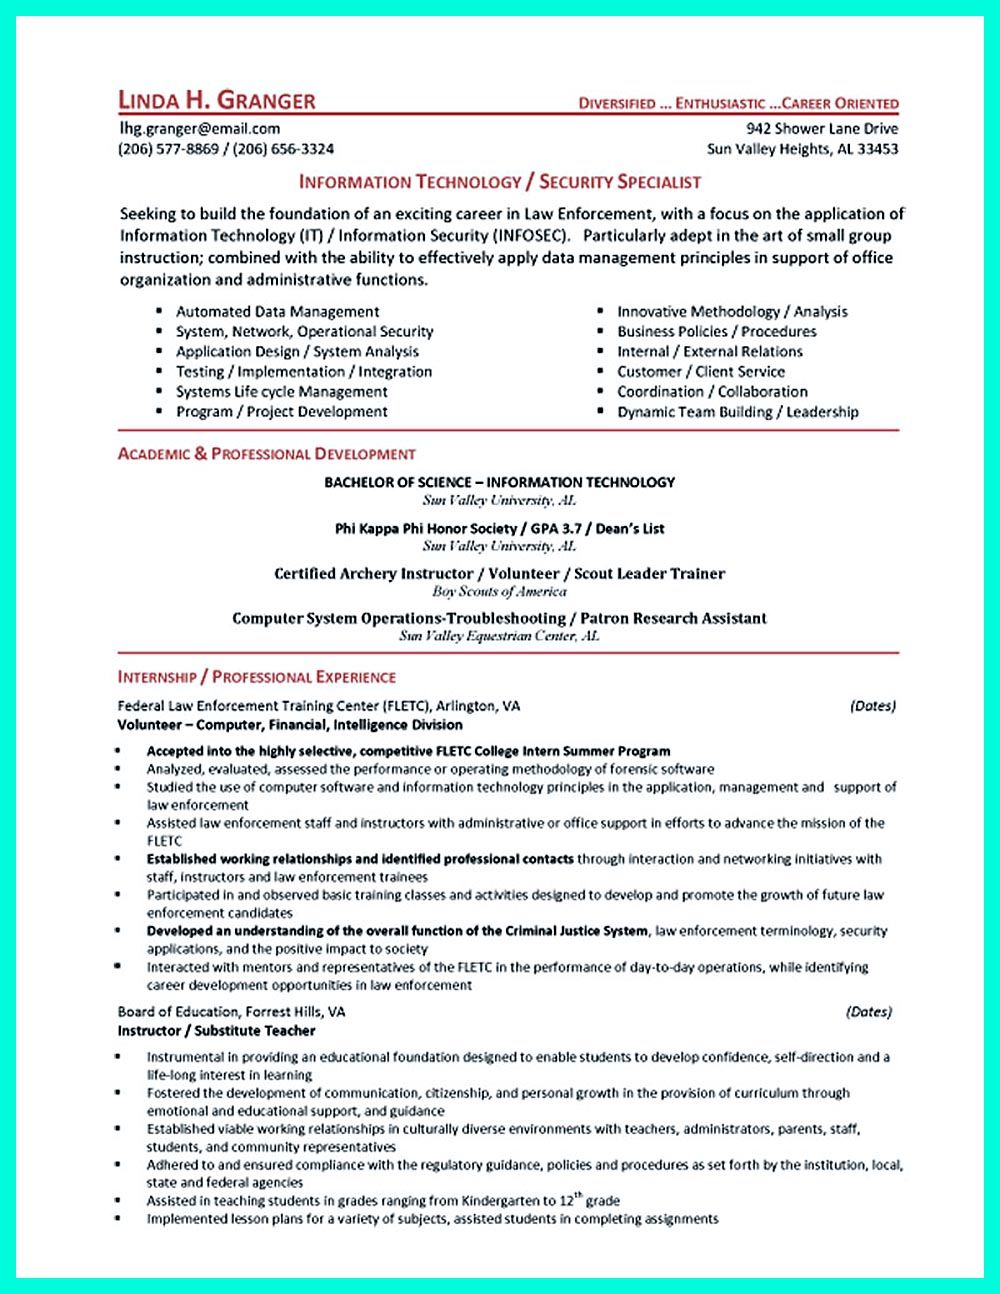 cyber security resume must be well created to get the job position as what you want - Security Professional Resume